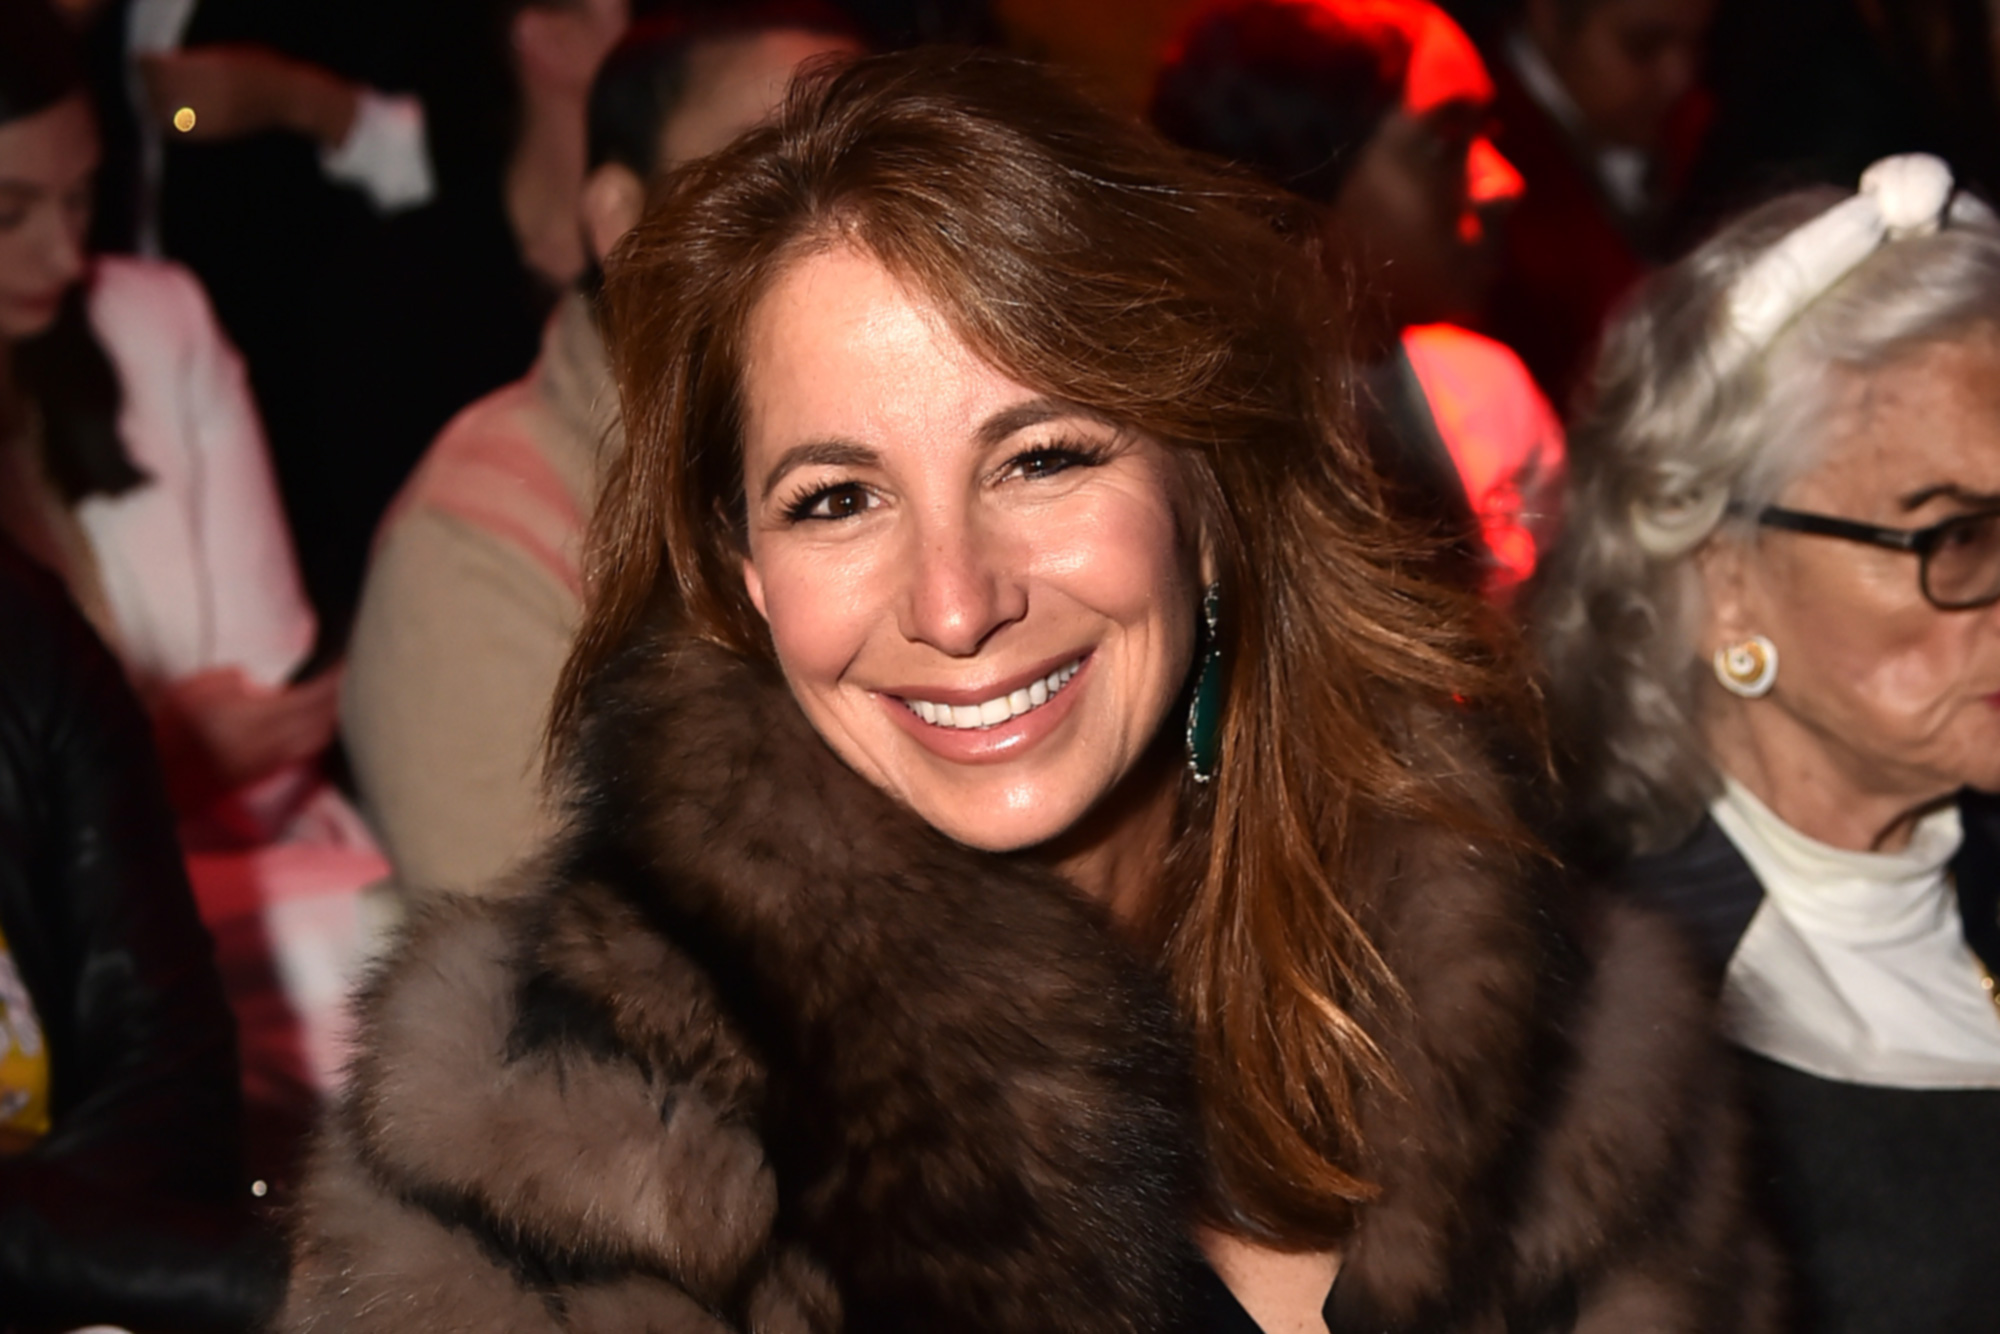 Jill Zarin built a face-mask empire during the pandemic